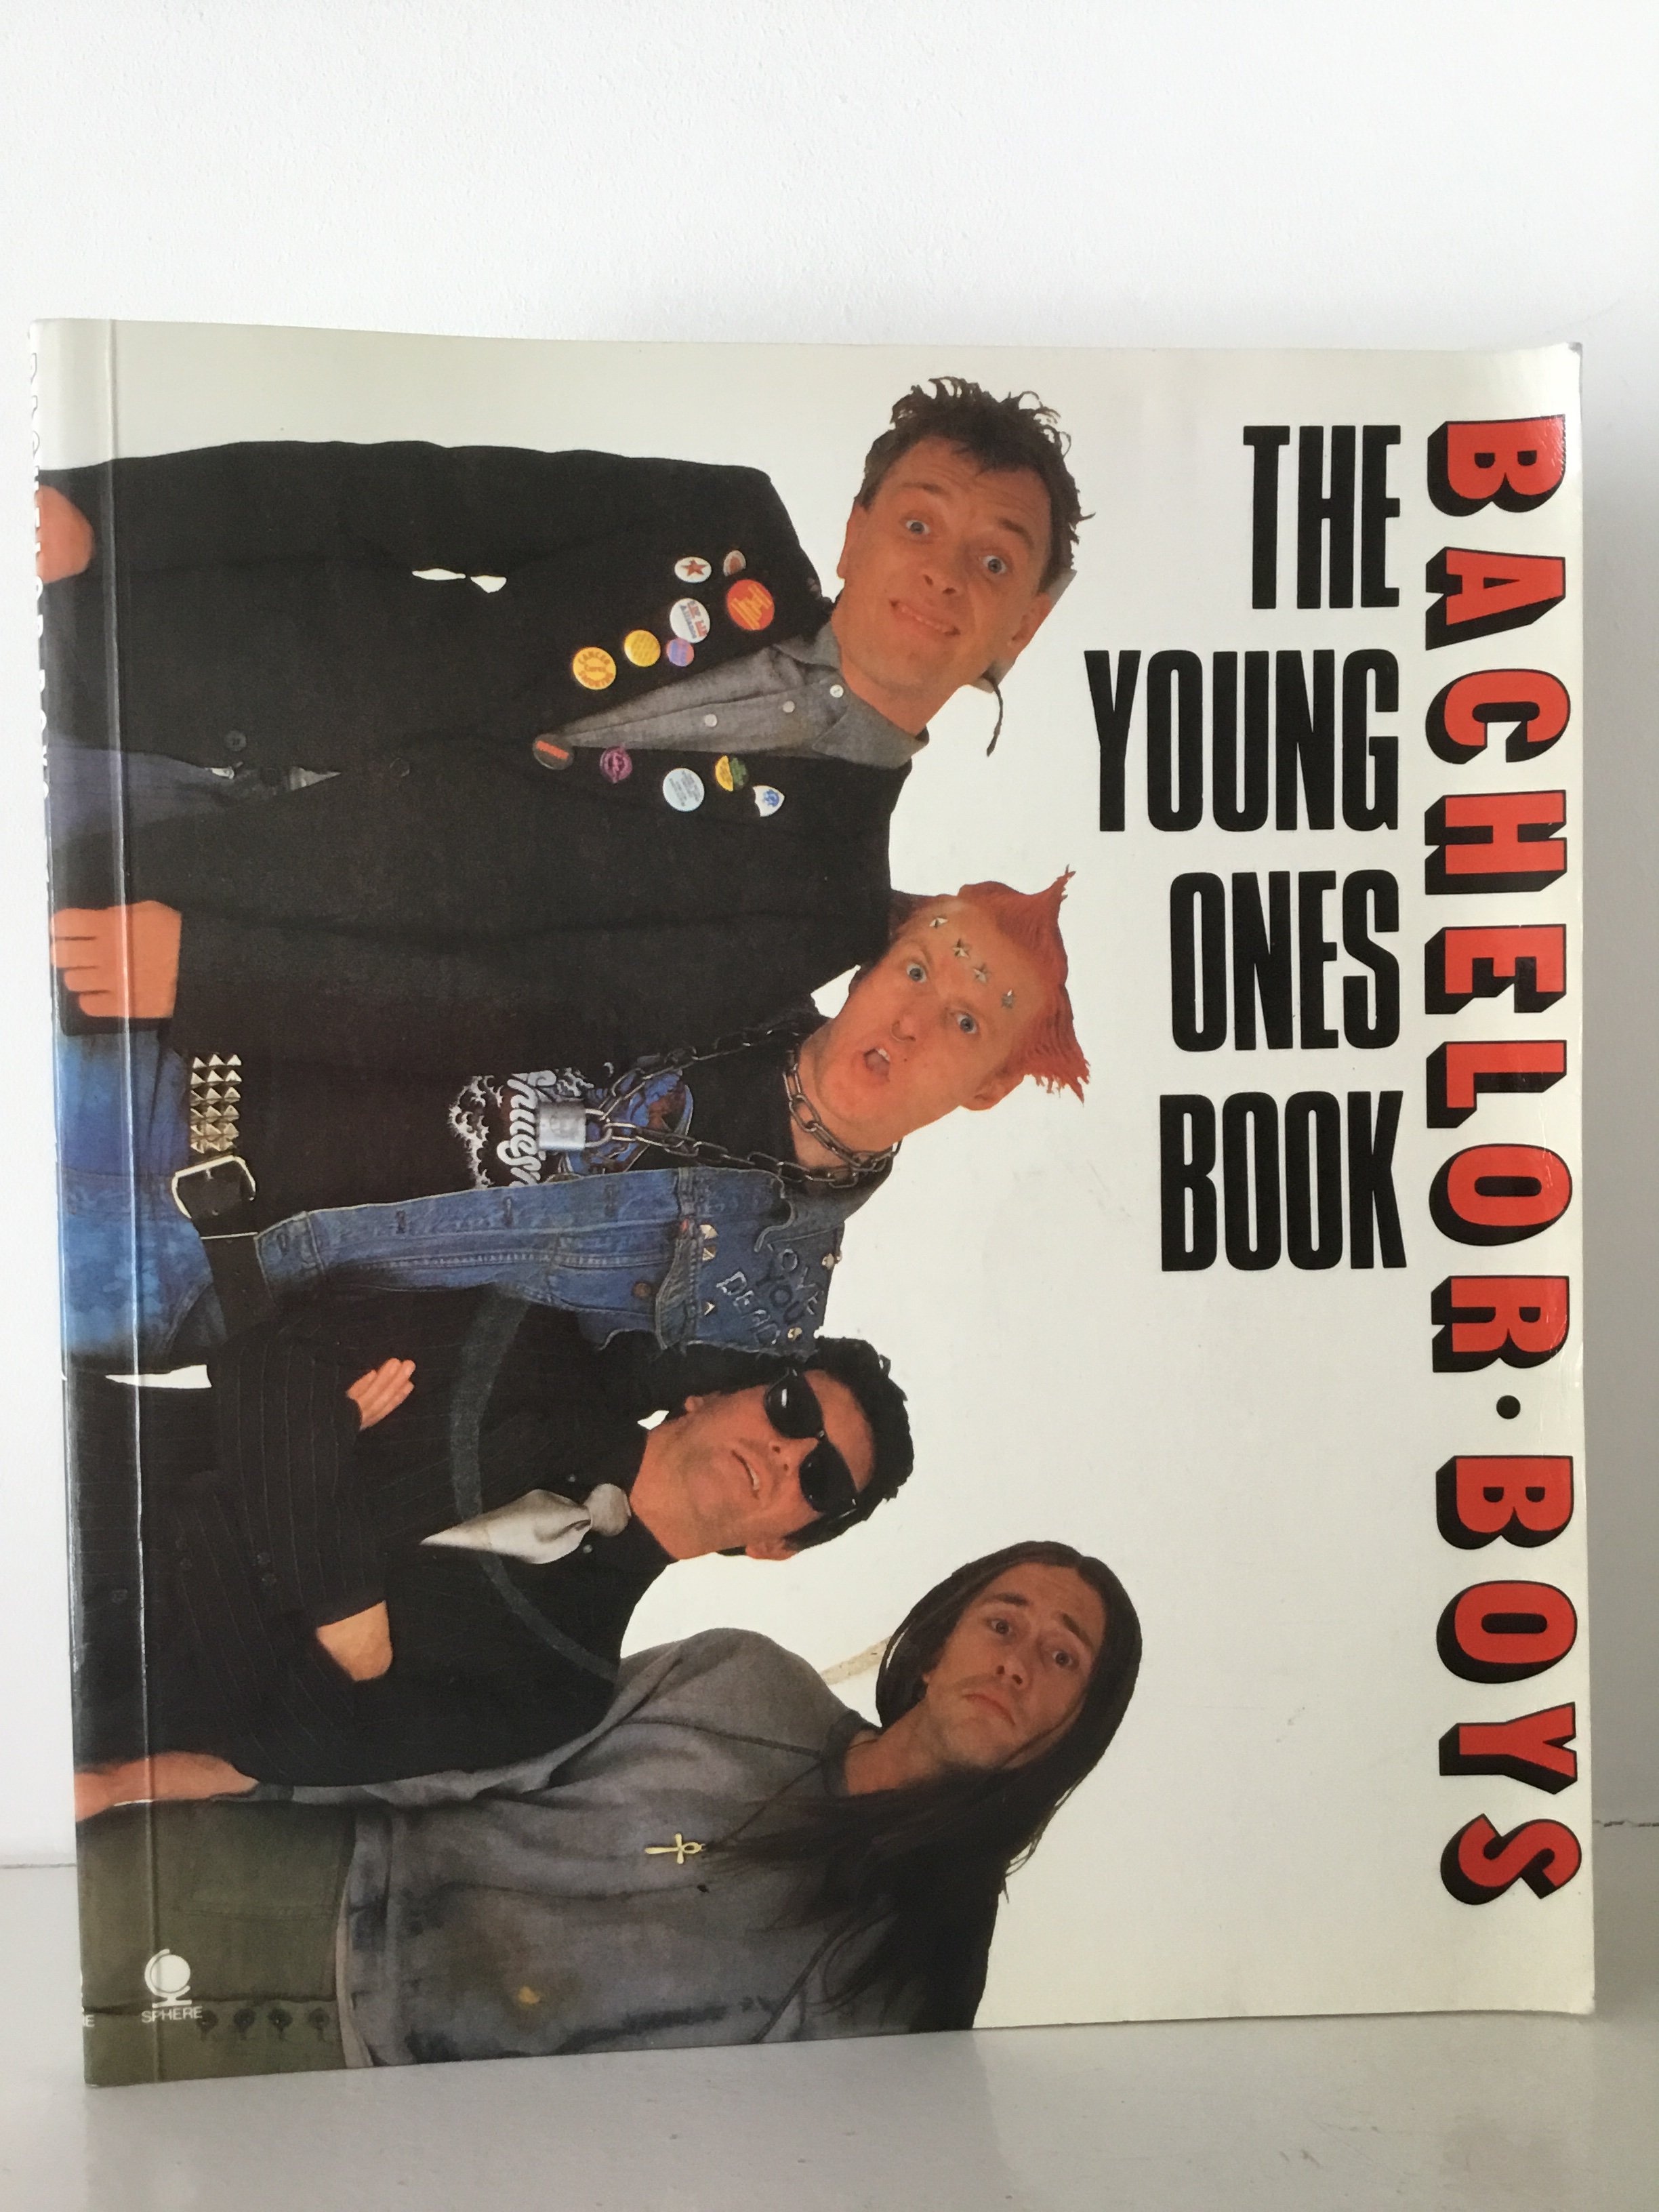 Books, The Young Ones Bachelor Boys